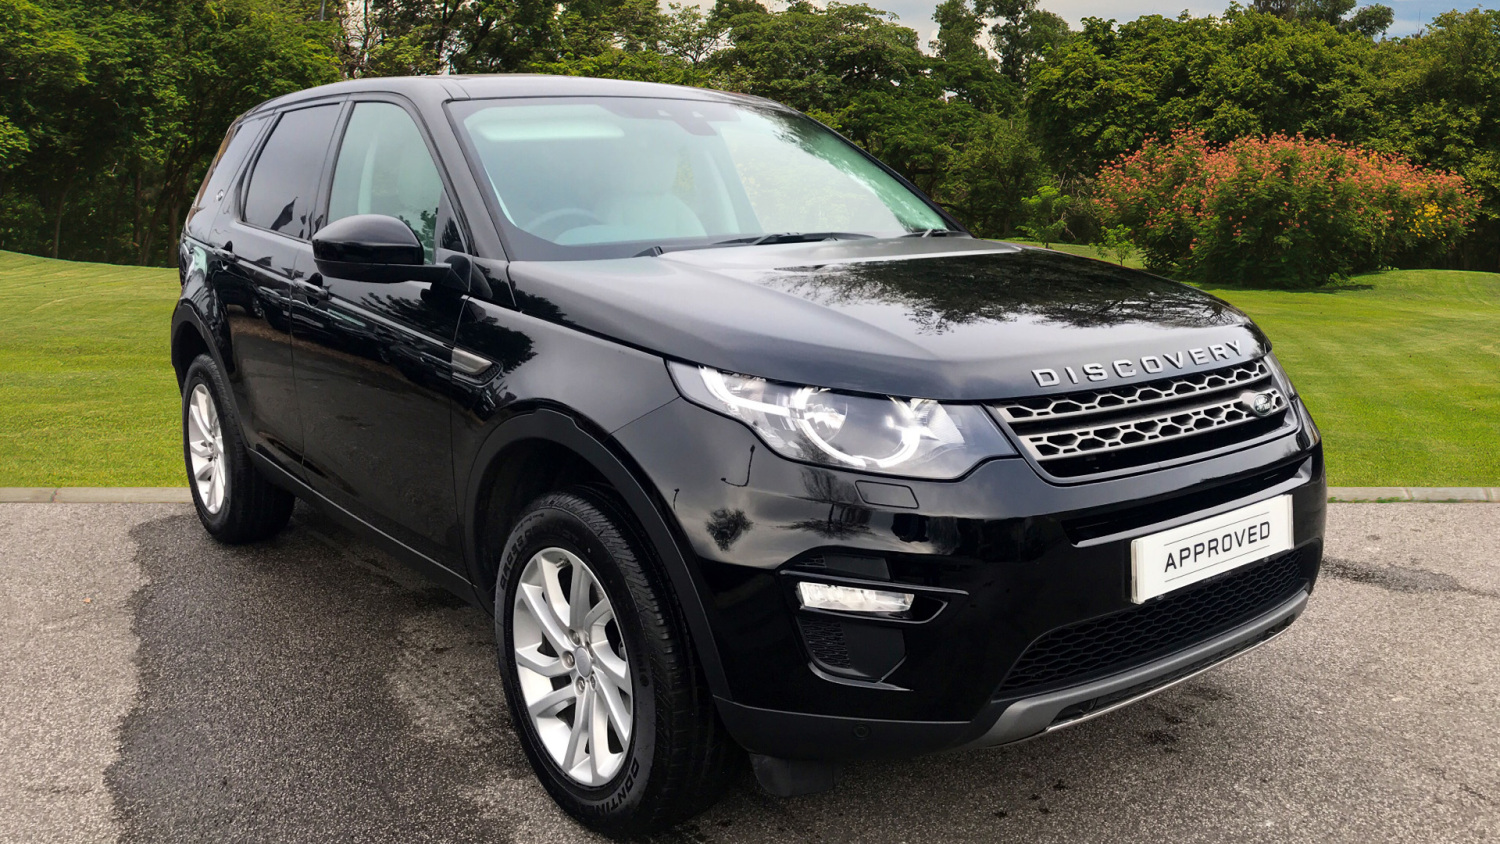 used land rover discovery sport 2 0 td4 180 se tech 5dr diesel station wagon for sale vertu toyota. Black Bedroom Furniture Sets. Home Design Ideas